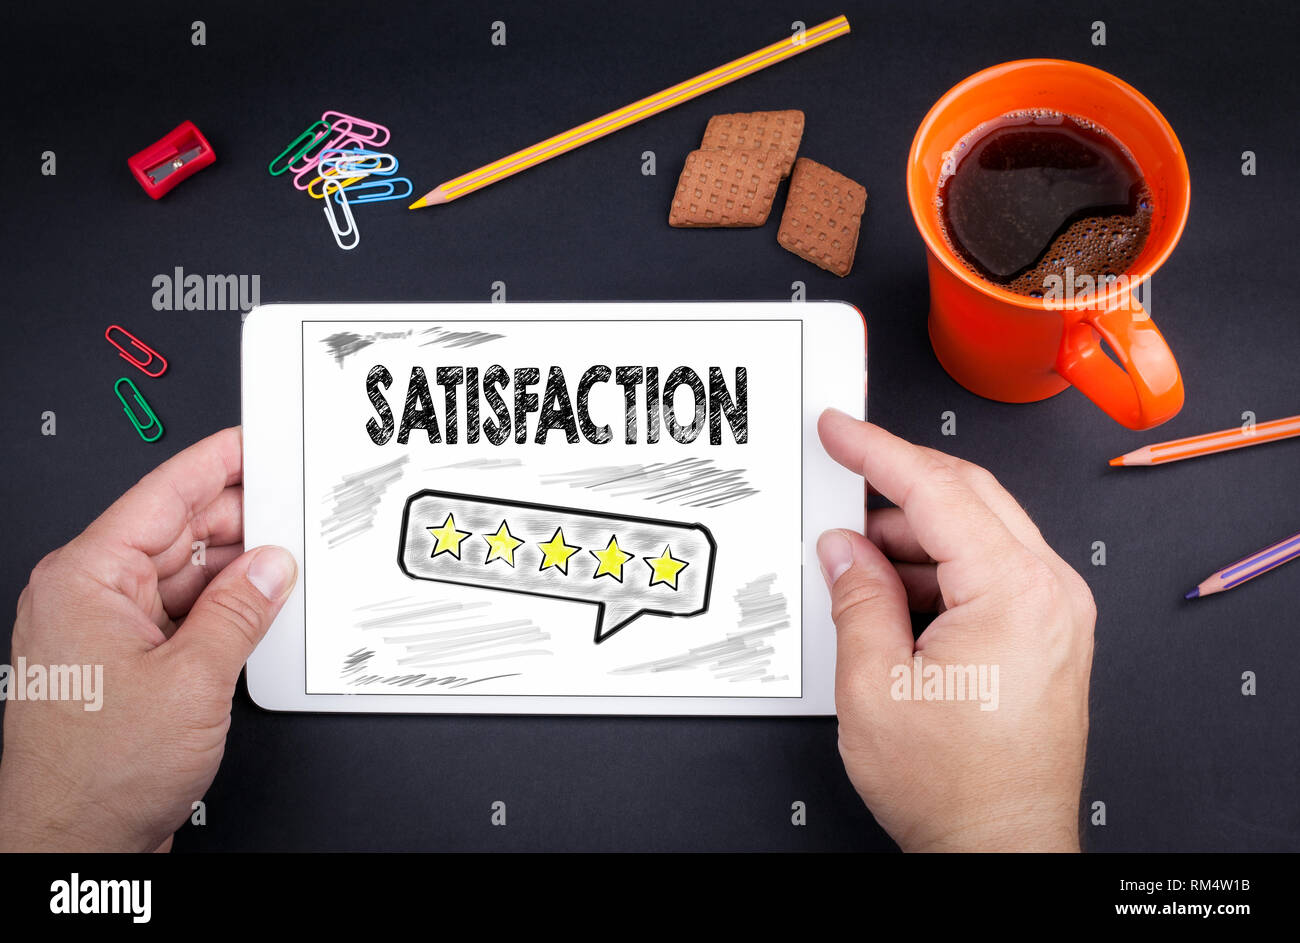 Satisfaction concept. Text and icon on tablet device - Stock Image